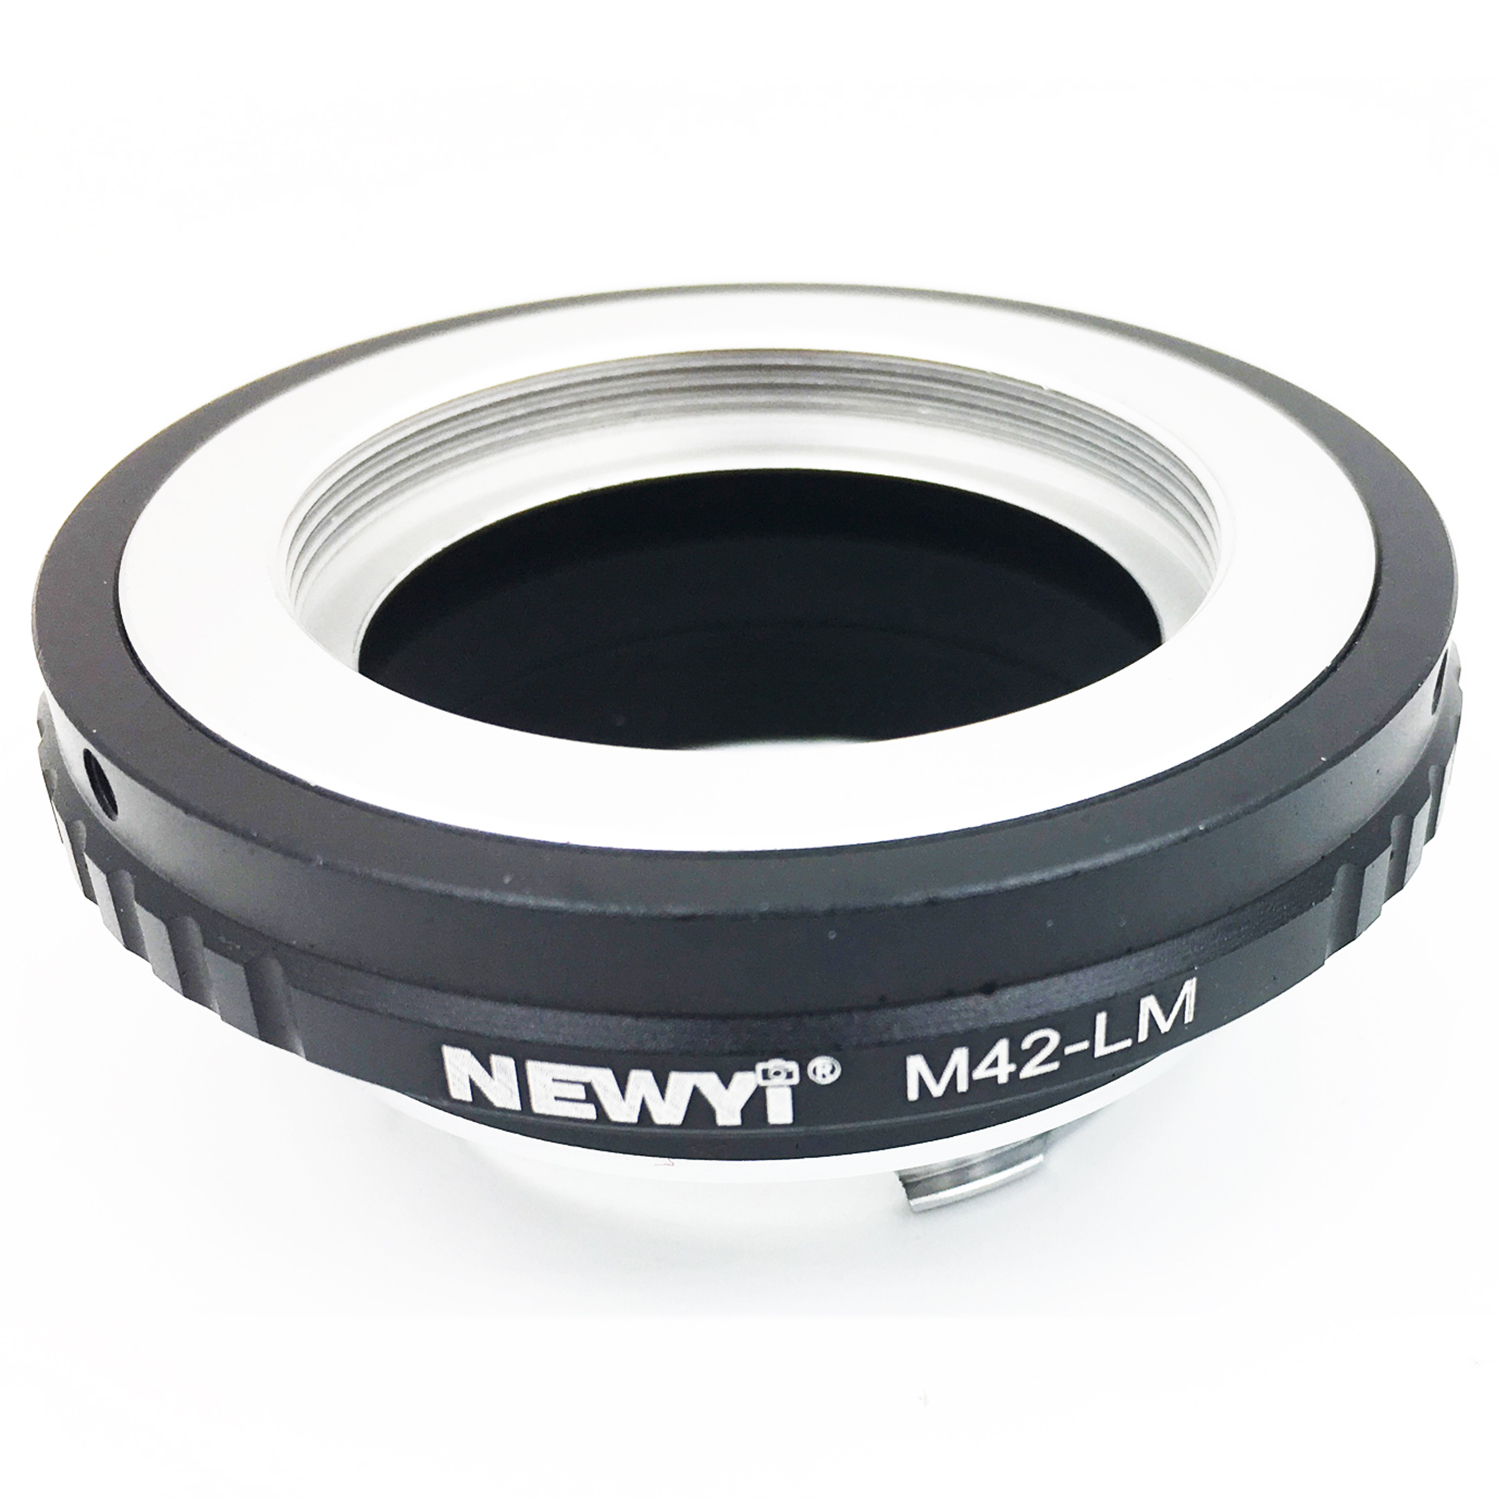 NEWYI M42-LM adapter for M42 Lens to Leica M LM camera M9 with TECHART LM-EA7,M42 Lens Adapter Converter to L-eica M Camera M24NEWYI M42-LM adapter for M42 Lens to Leica M LM camera M9 with TECHART LM-EA7,M42 Lens Adapter Converter to L-eica M Camera M24